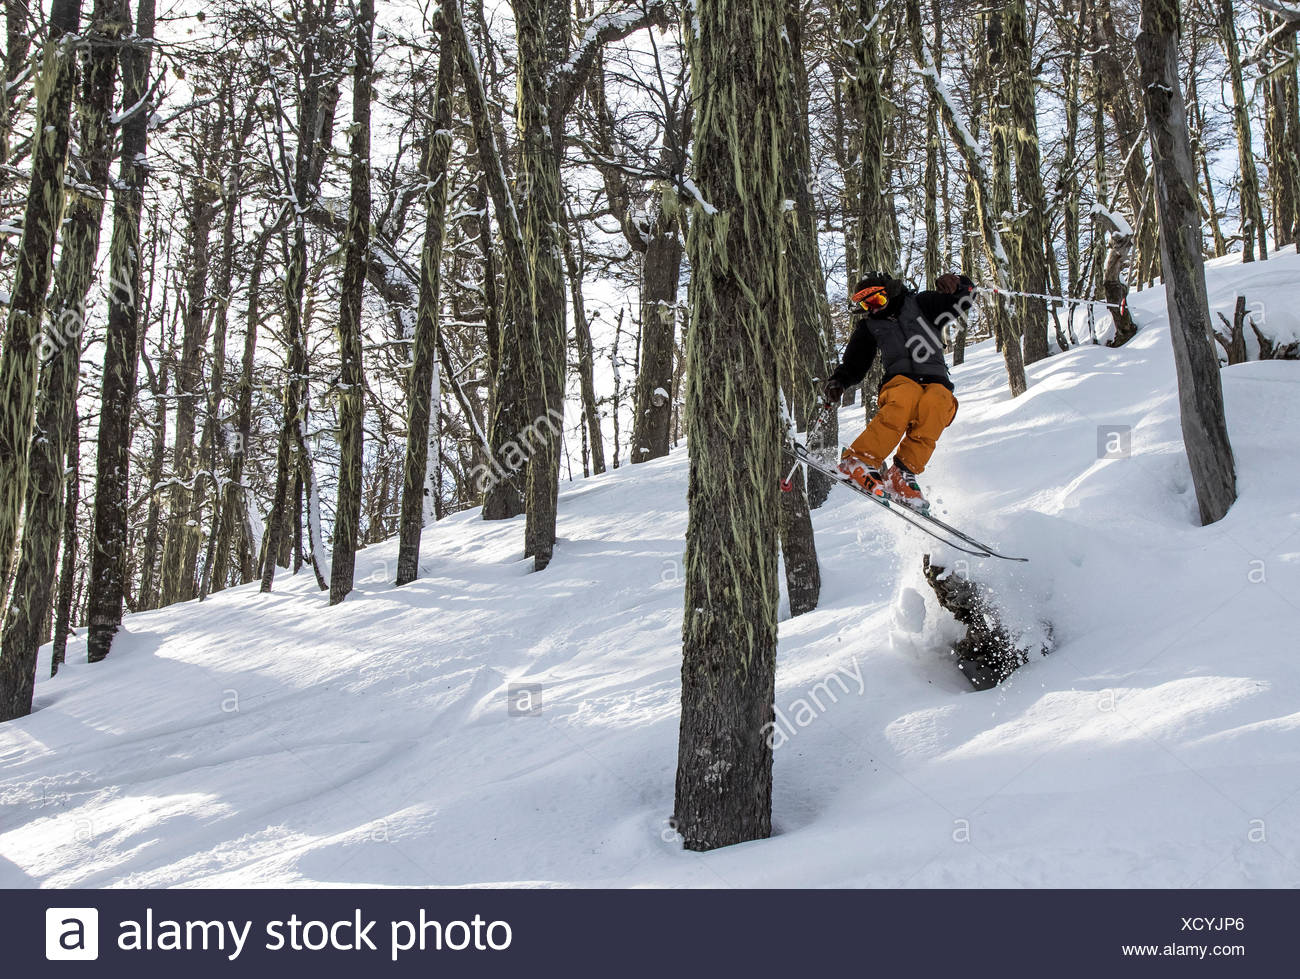 A Skier Airs Off A Snow Covered Stump And Taps A Tree With His Tails In A Forest Around Cerro Catedral In Argentina - Stock Image